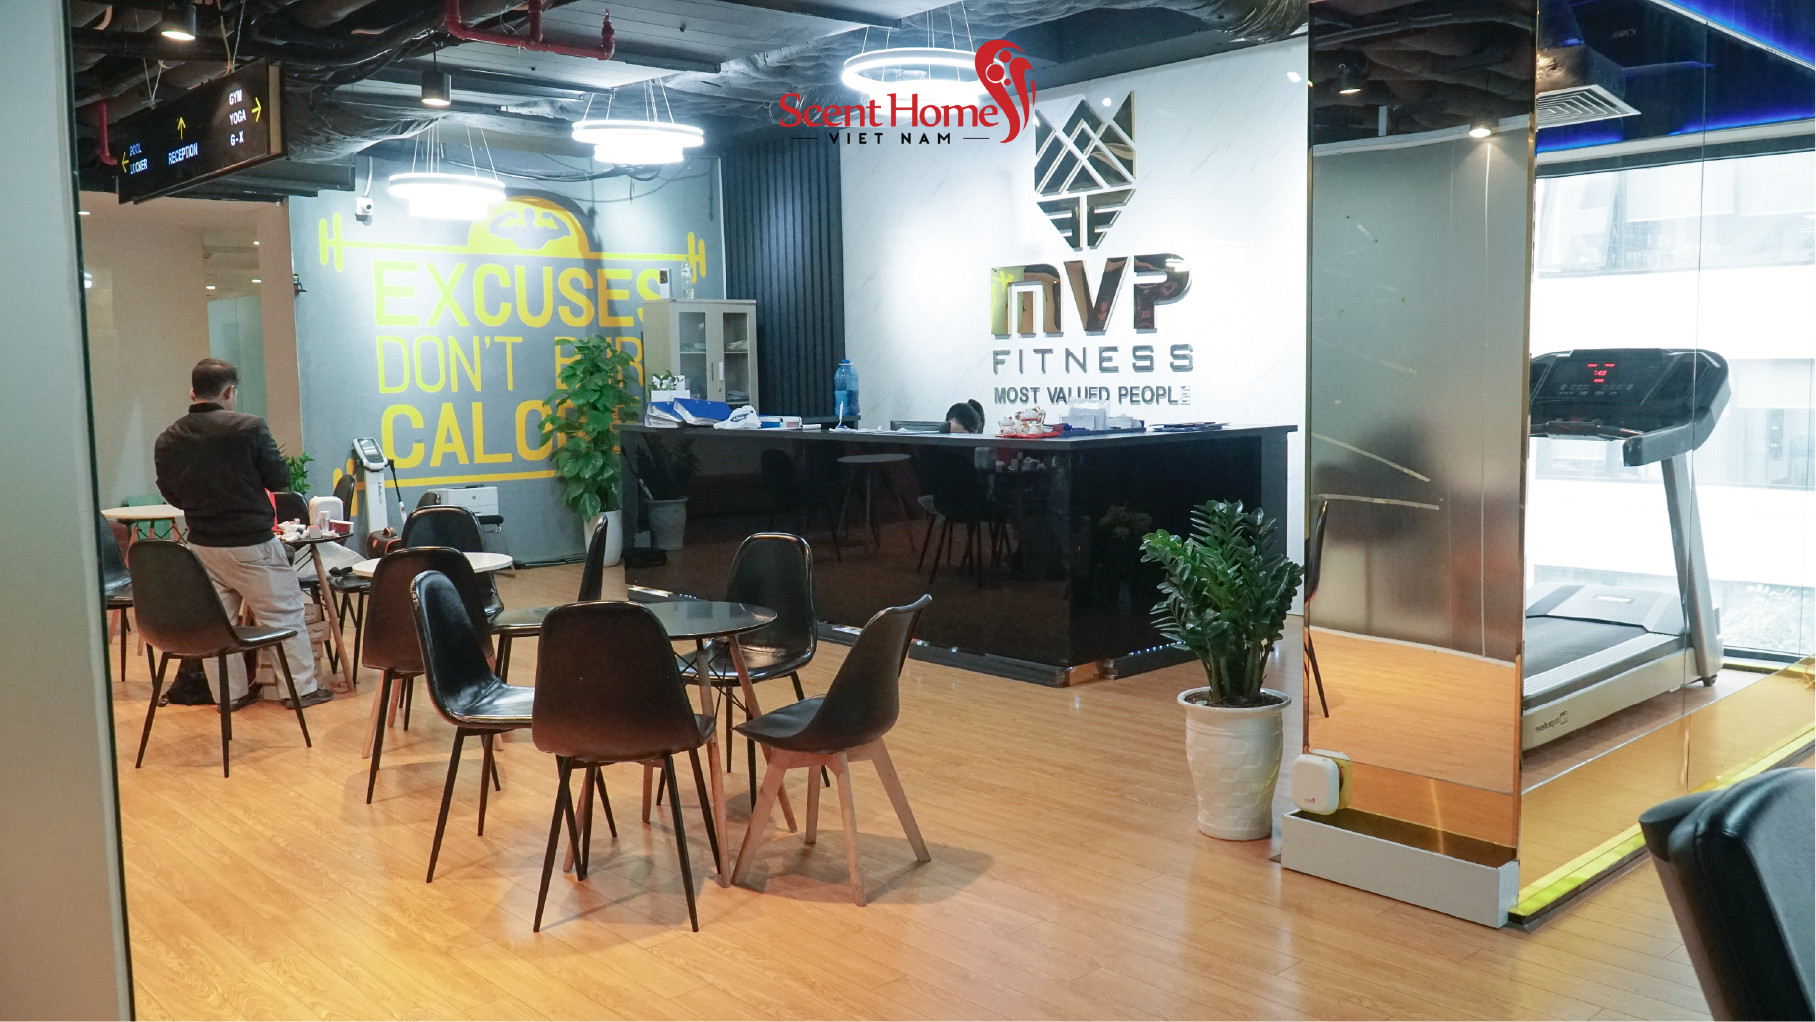 SCENT HOMES cooperates with MVP FITNESS